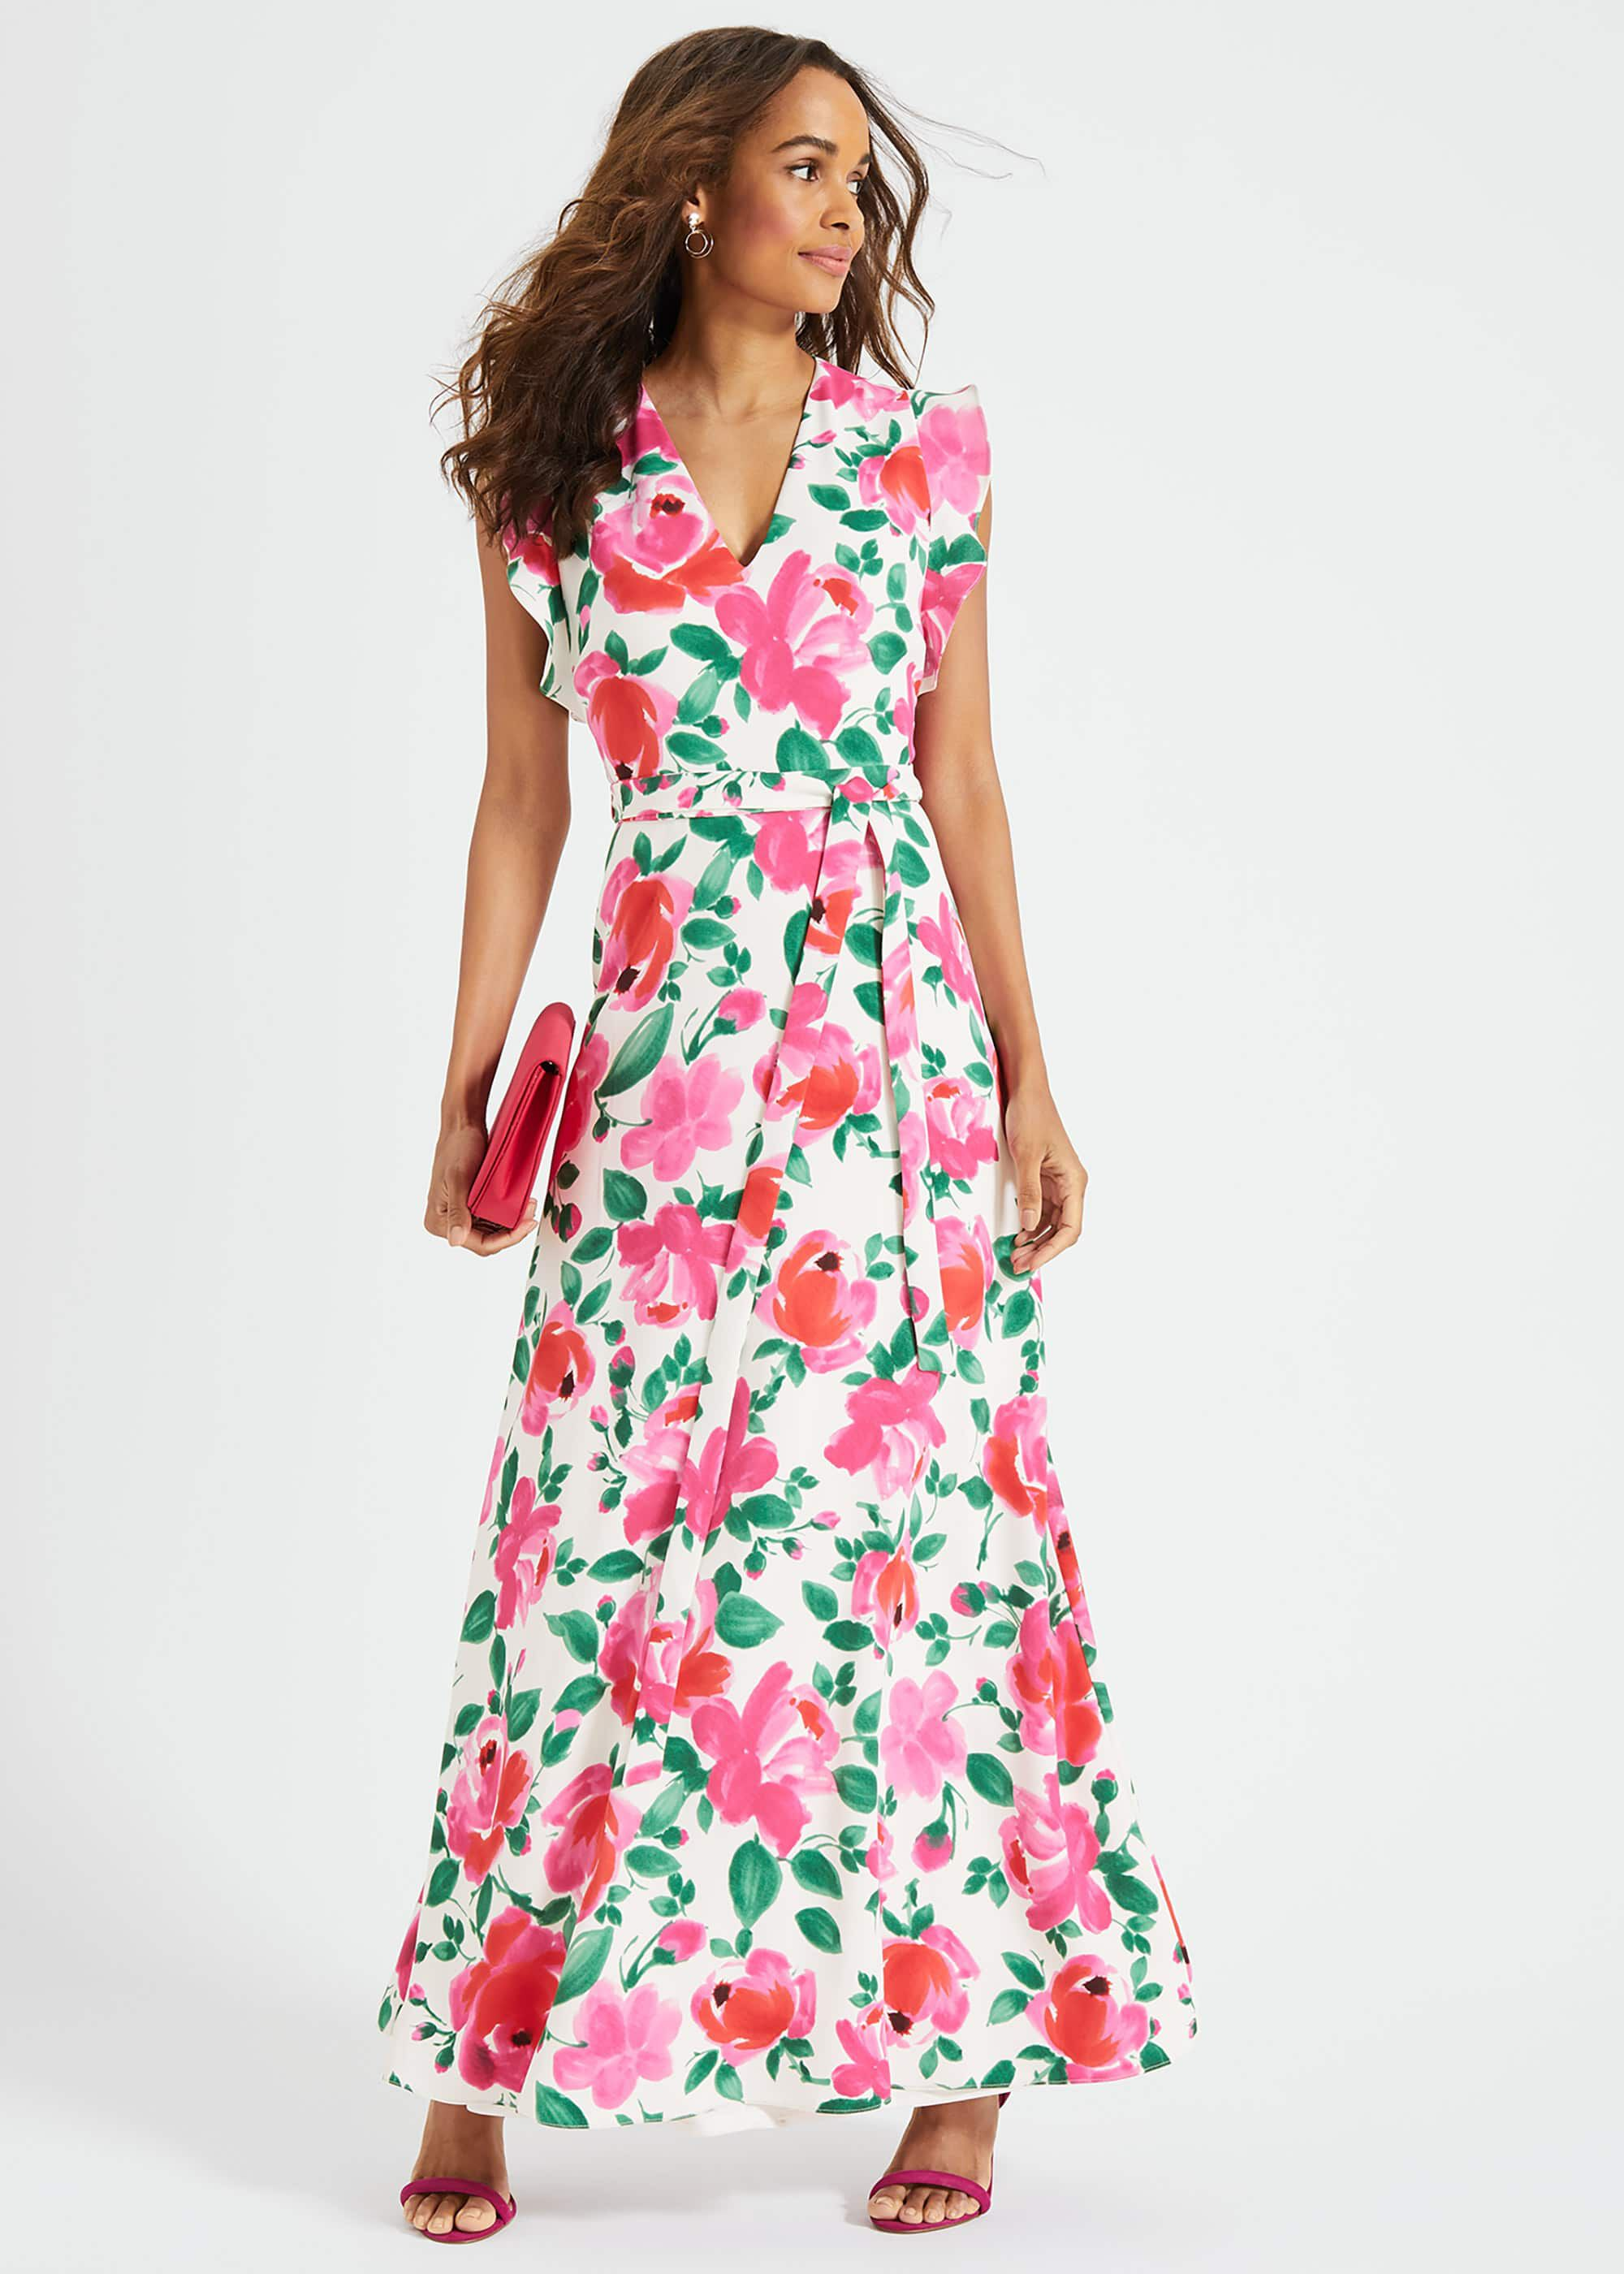 Phase Eight Rosita Printed Maxi Dress, Multicoloured, Maxi, Occasion Dress